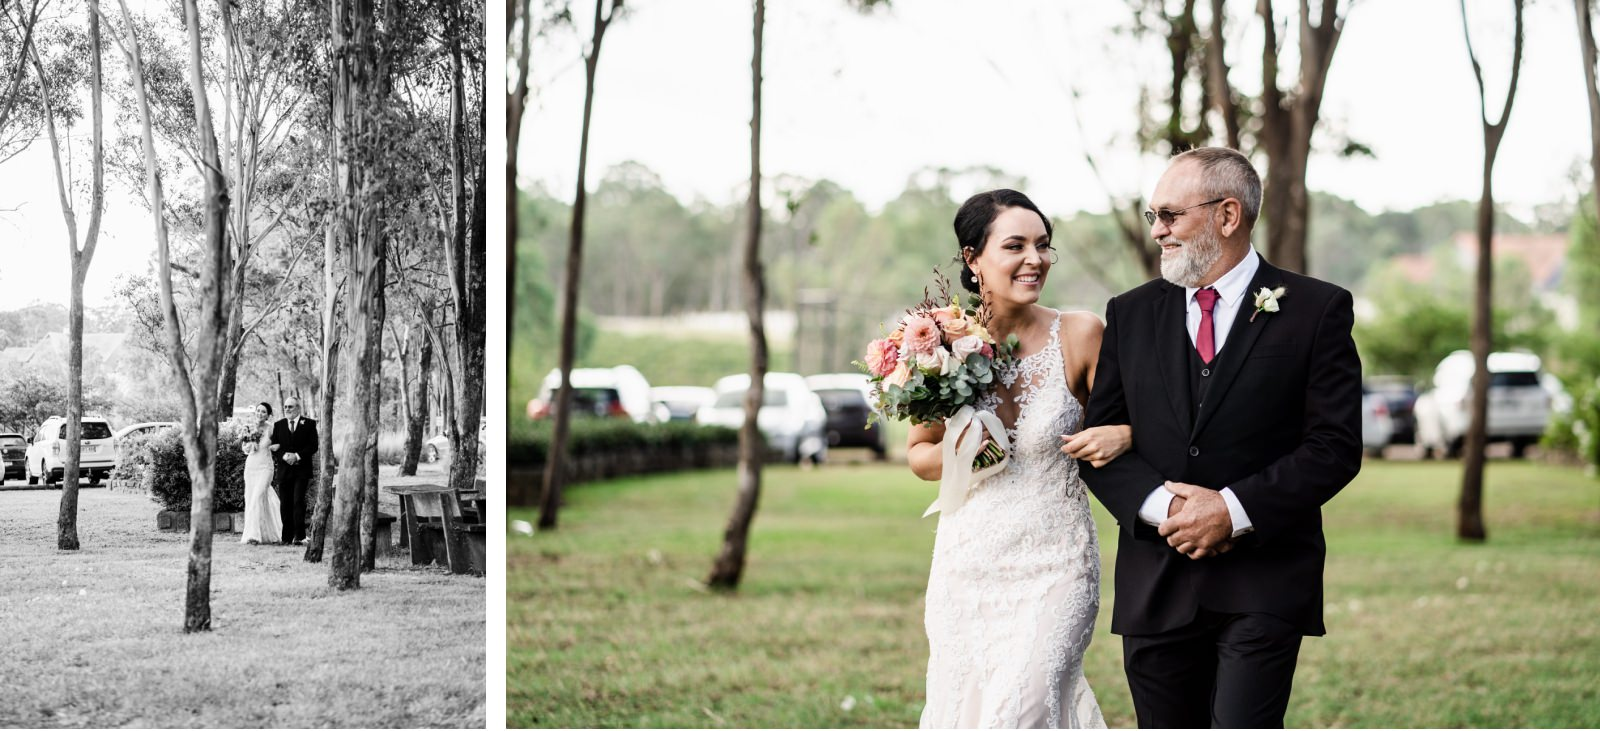 wandin-valley-estate-winery-lovedale-wedding-hunter-valley-wedding-photographer-19